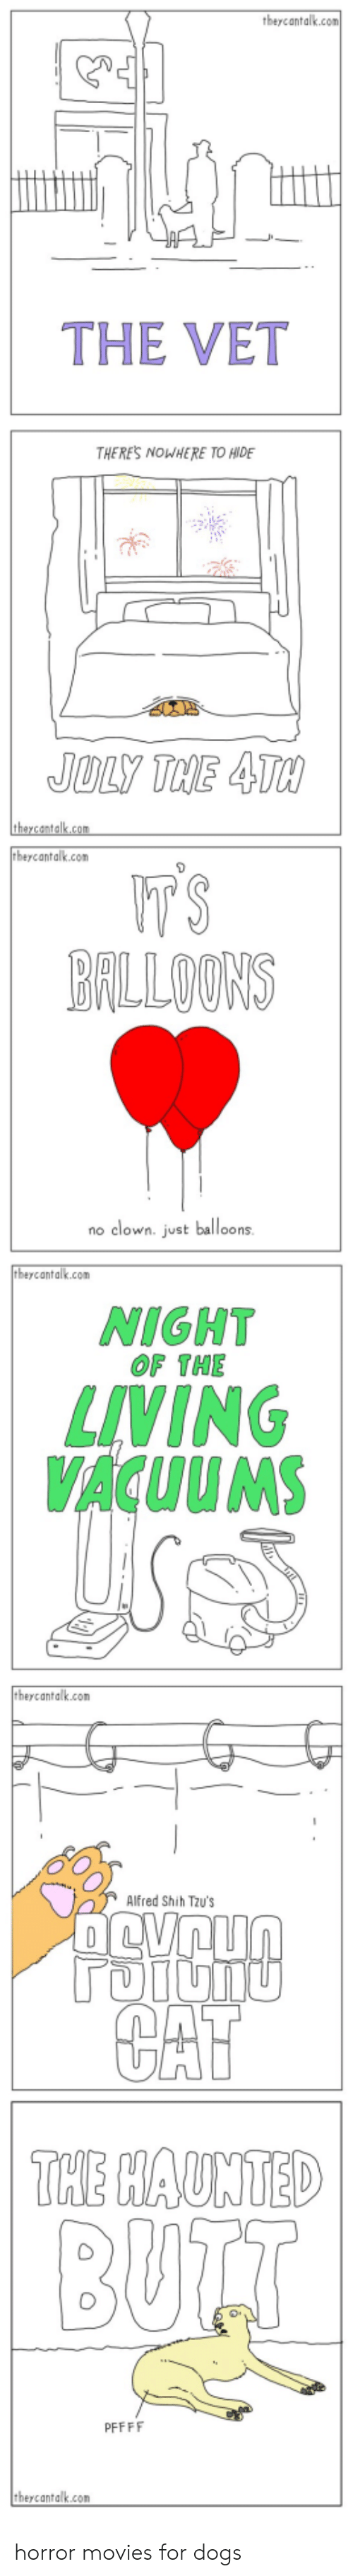 balloons: theycantalk.com  THE VET  THERES NOWHERE TO HIDE  JULY THE 4TH  theycantalk.com  tbeycantalk.com  T'S  BALLOONS  no clown. just balloons  theycantalk.com  NIGHT  OF THE  LIVING  VACUUMS  theycantalk.com  Alfred Shih Tzu's  TOIUNU  CAT  THE HAUNTED  BUTT  PFFFF  theycantalk.com horror movies for dogs